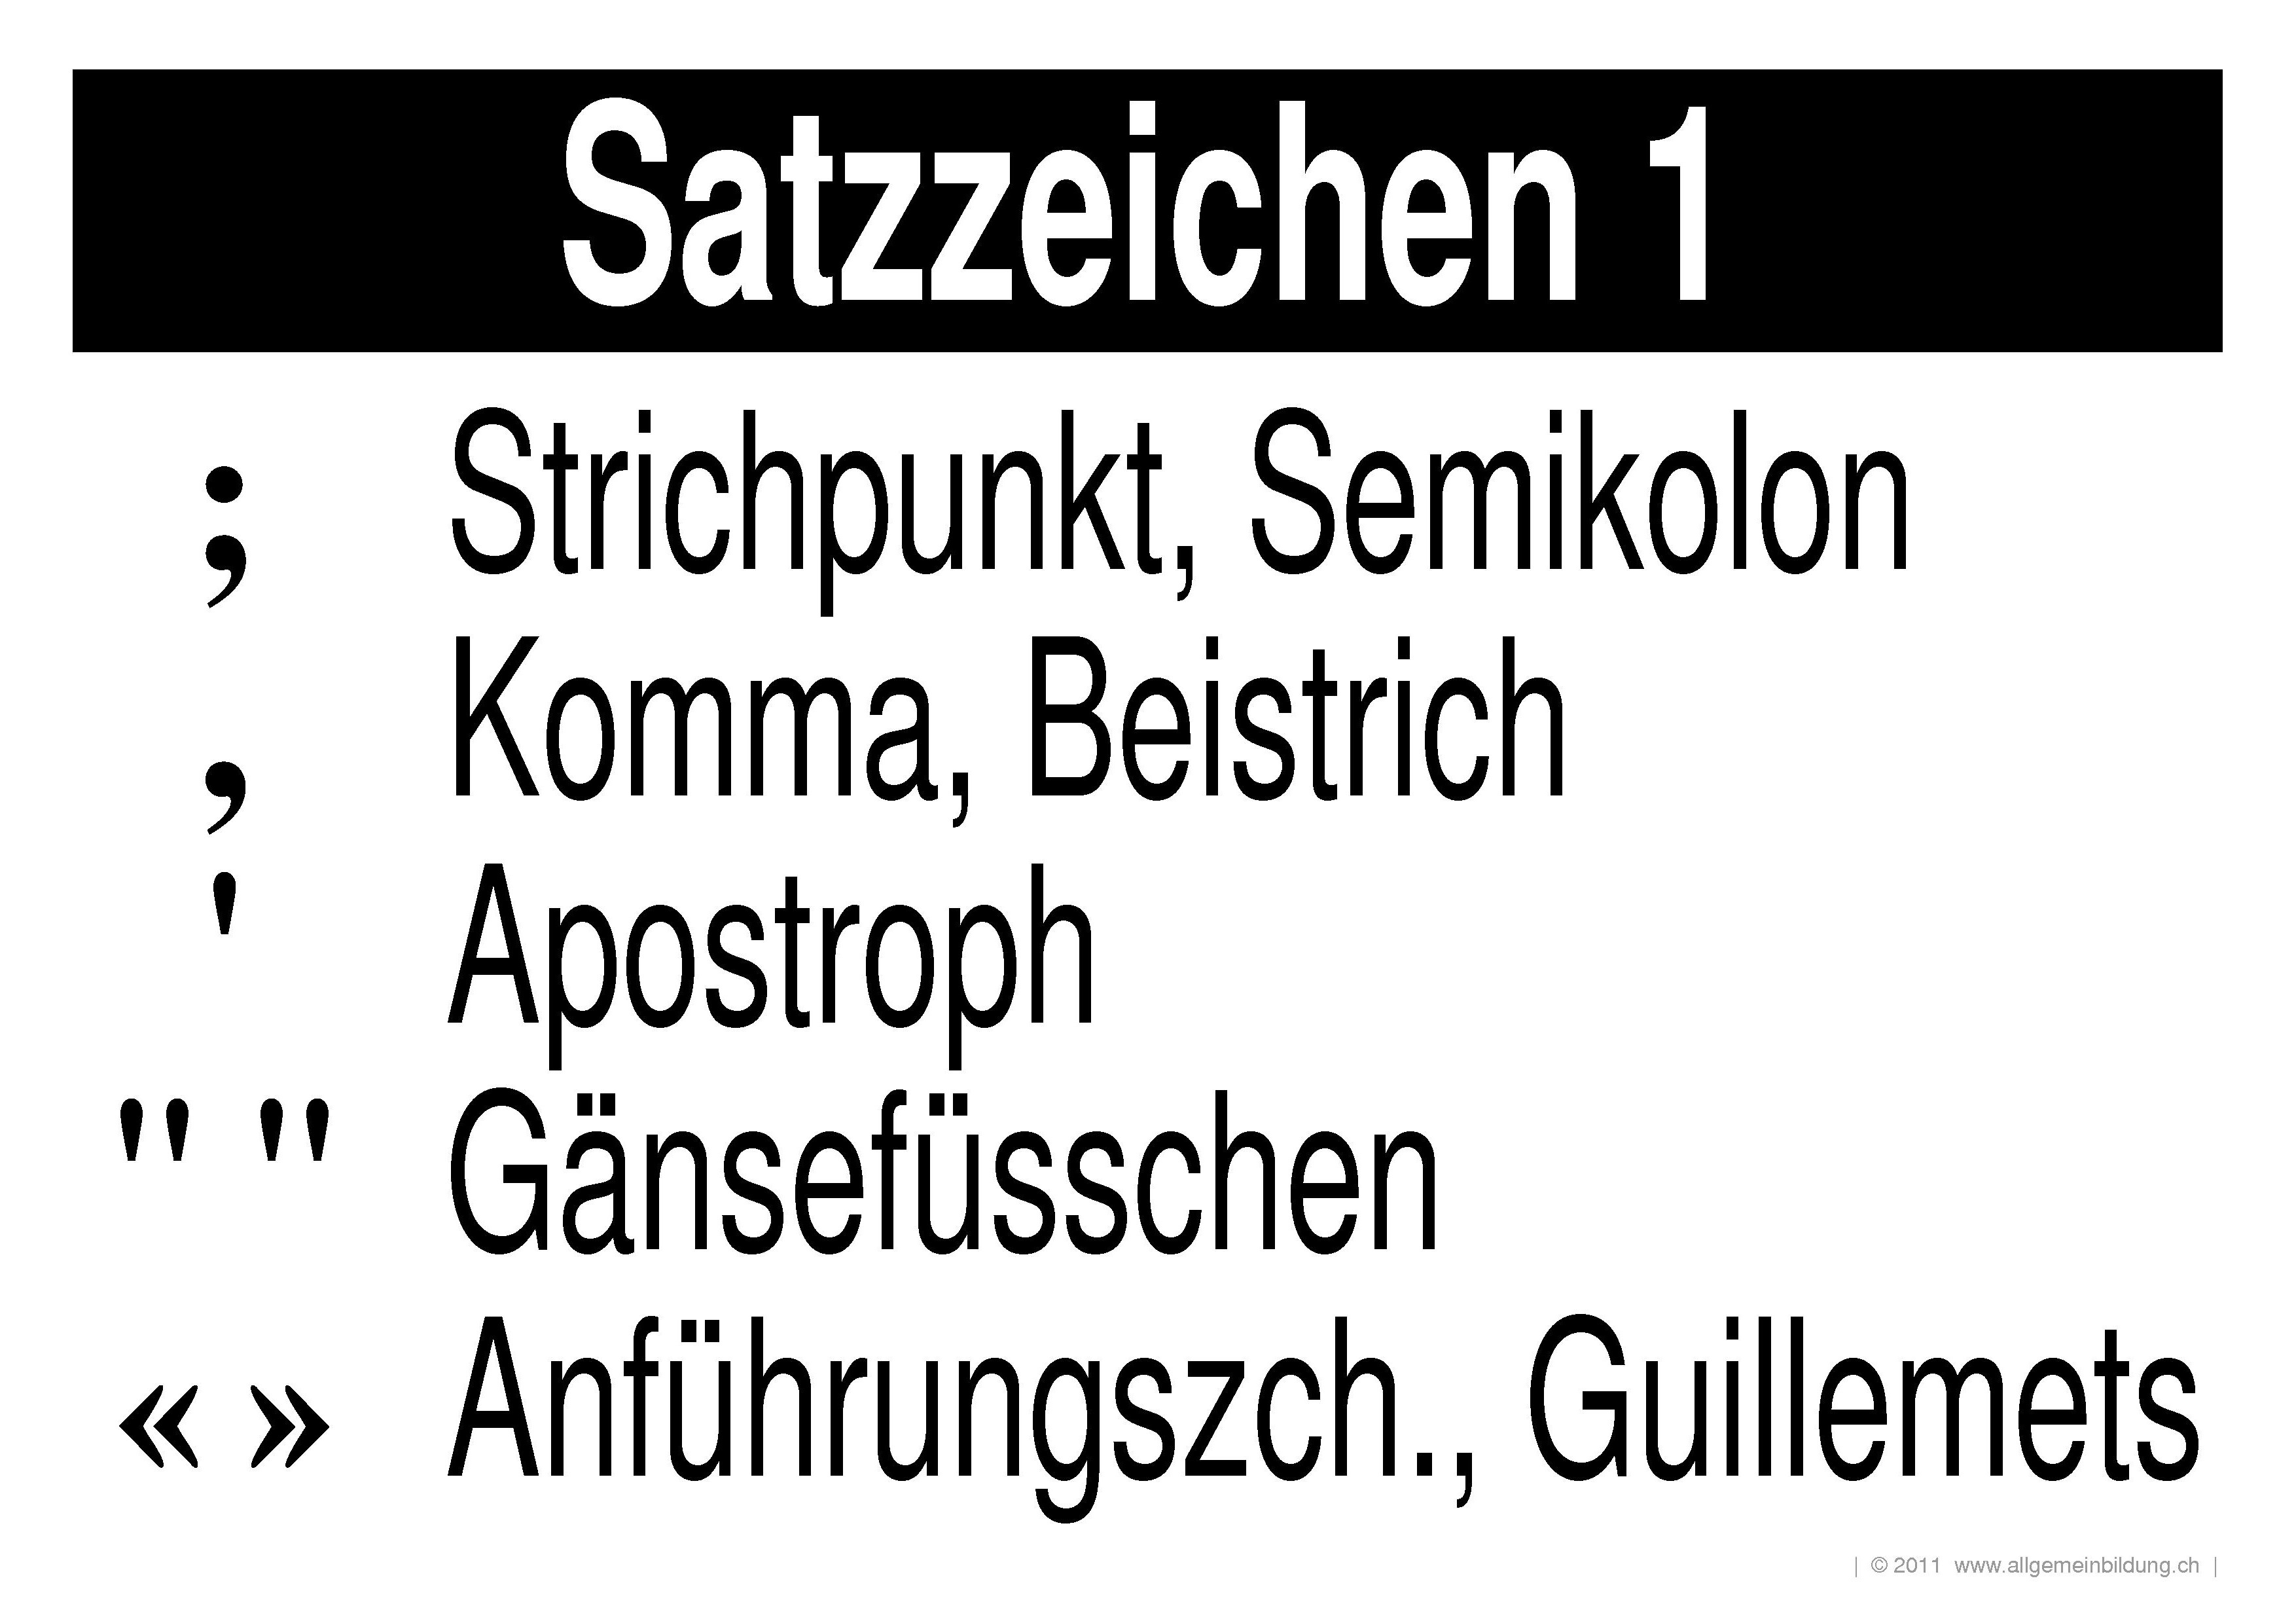 deutsch lernplakate wissensposter satzzeichen 1 8500 bungen arbeitsbl tter r tsel quiz. Black Bedroom Furniture Sets. Home Design Ideas